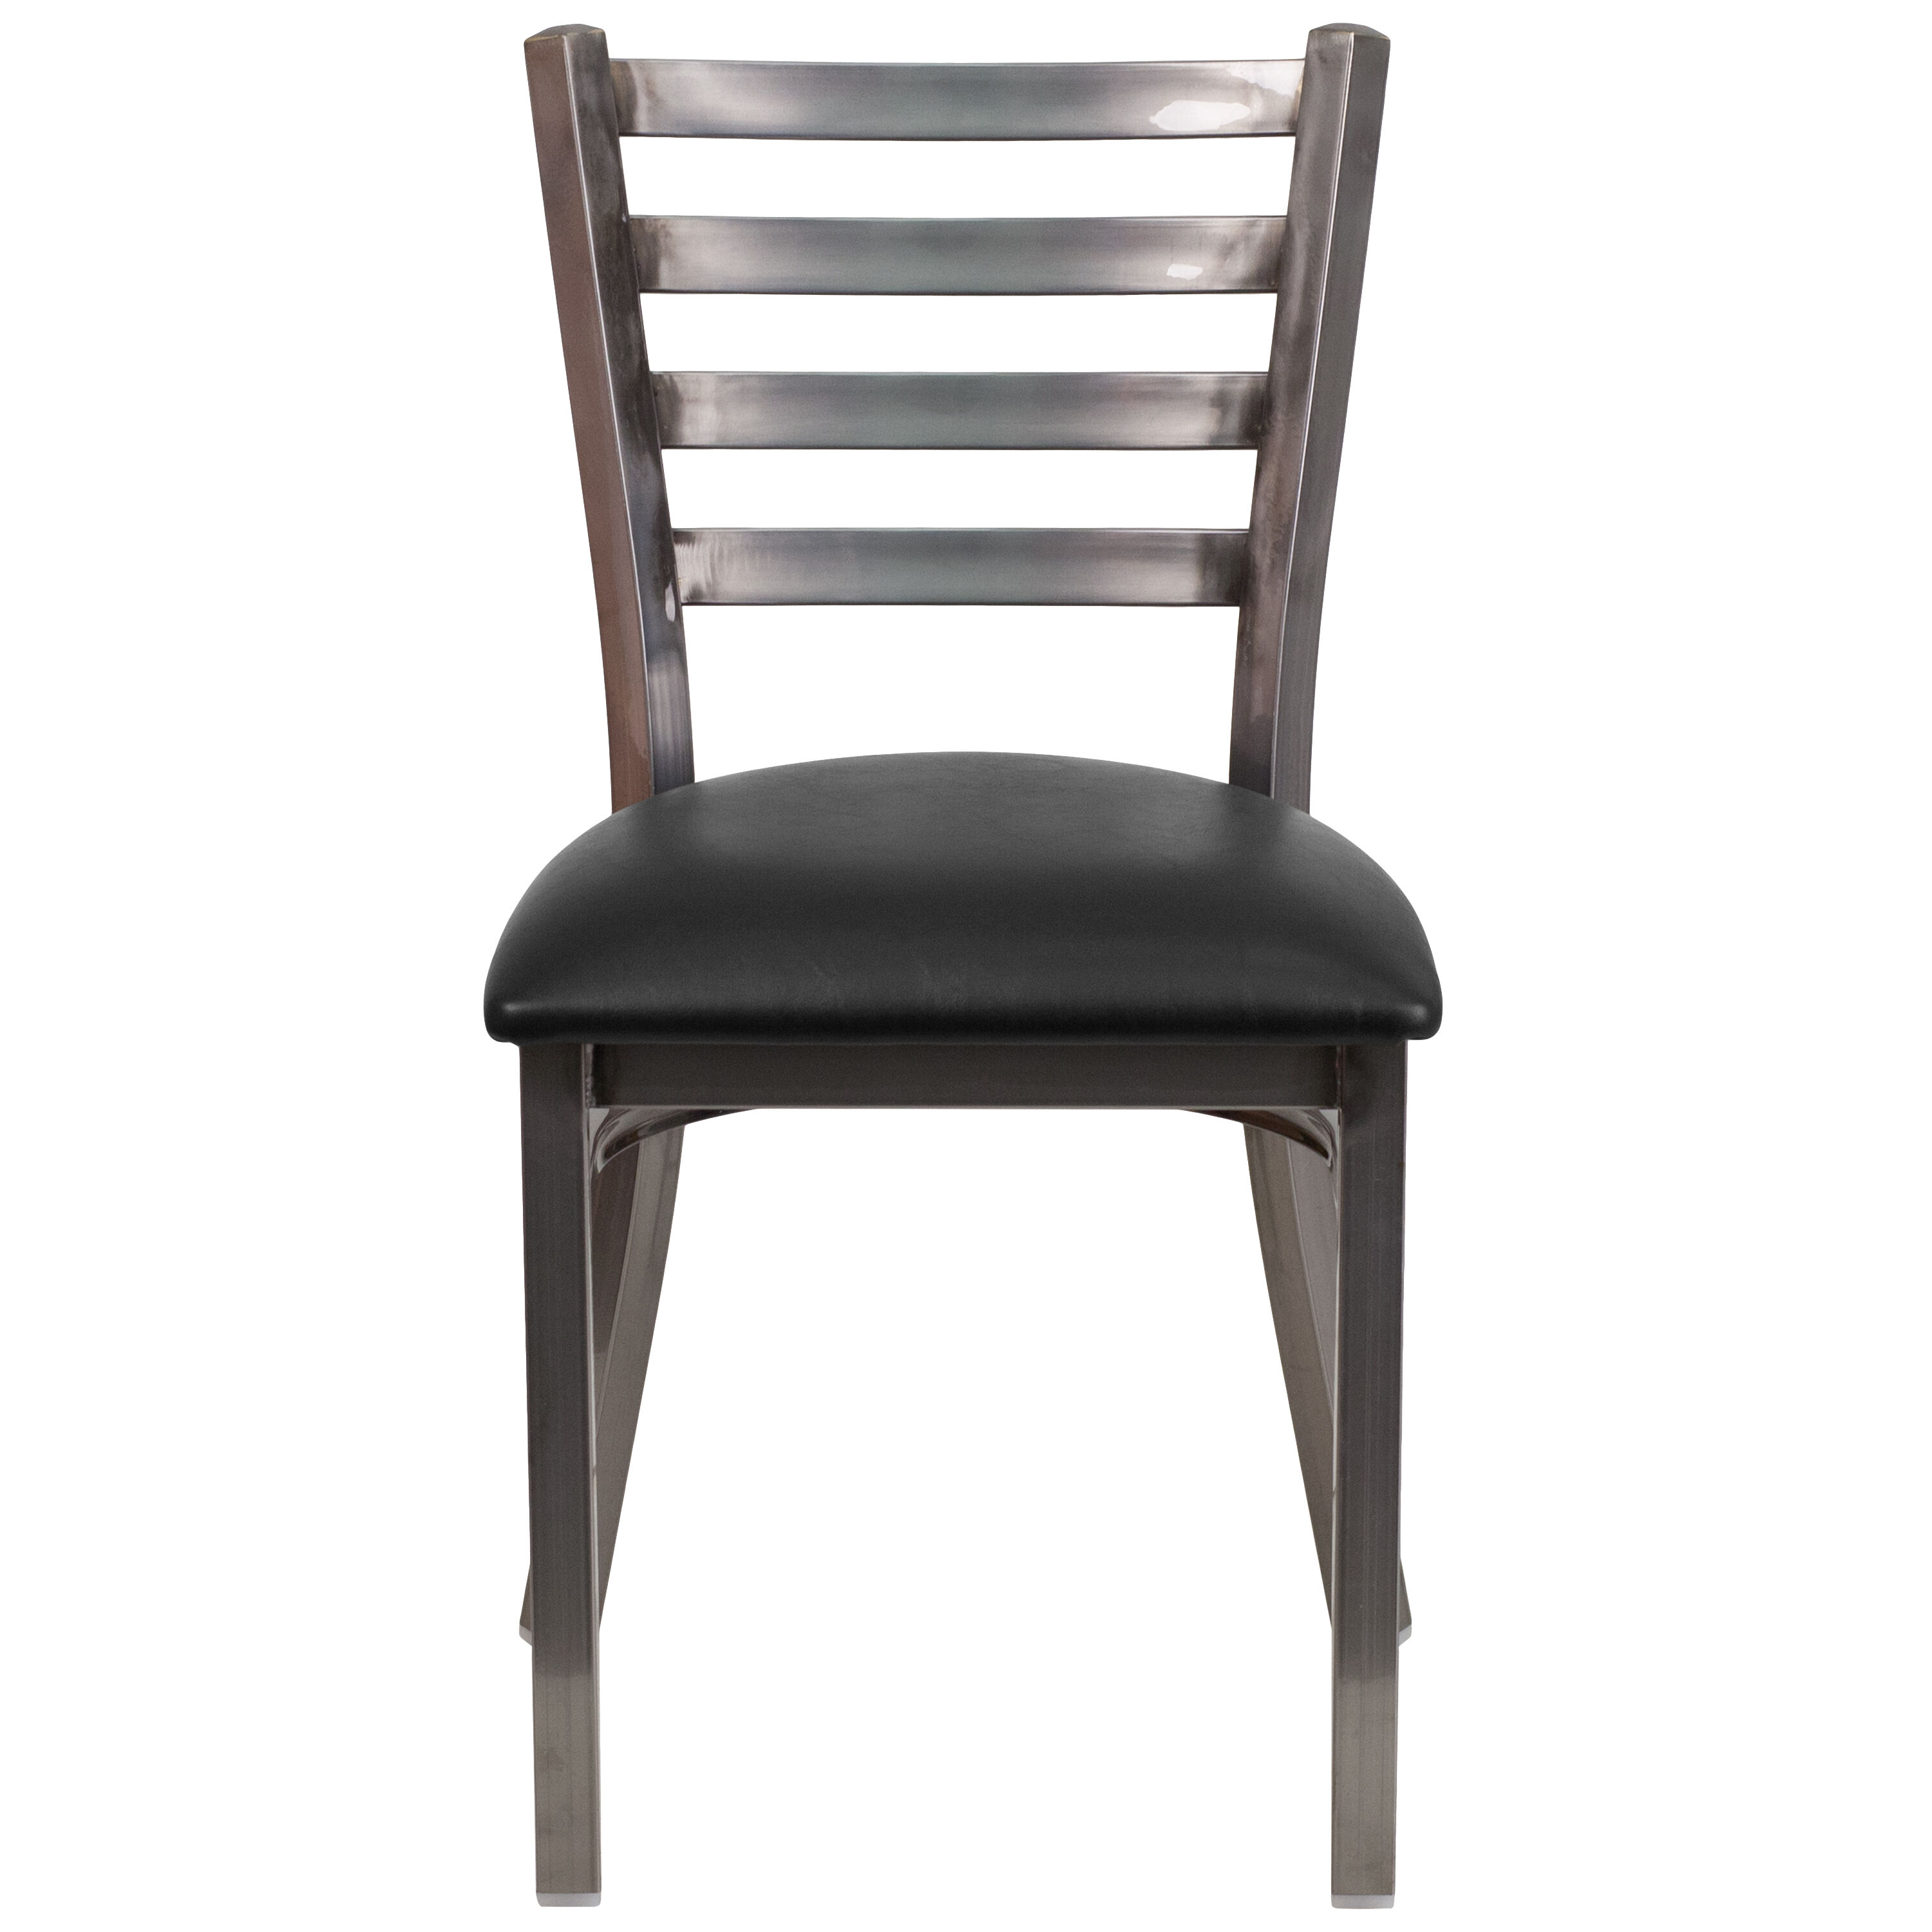 Restaurant Chairs Clear Ladder Chair Black Seat Bfdh 6147clrladbk Tdr